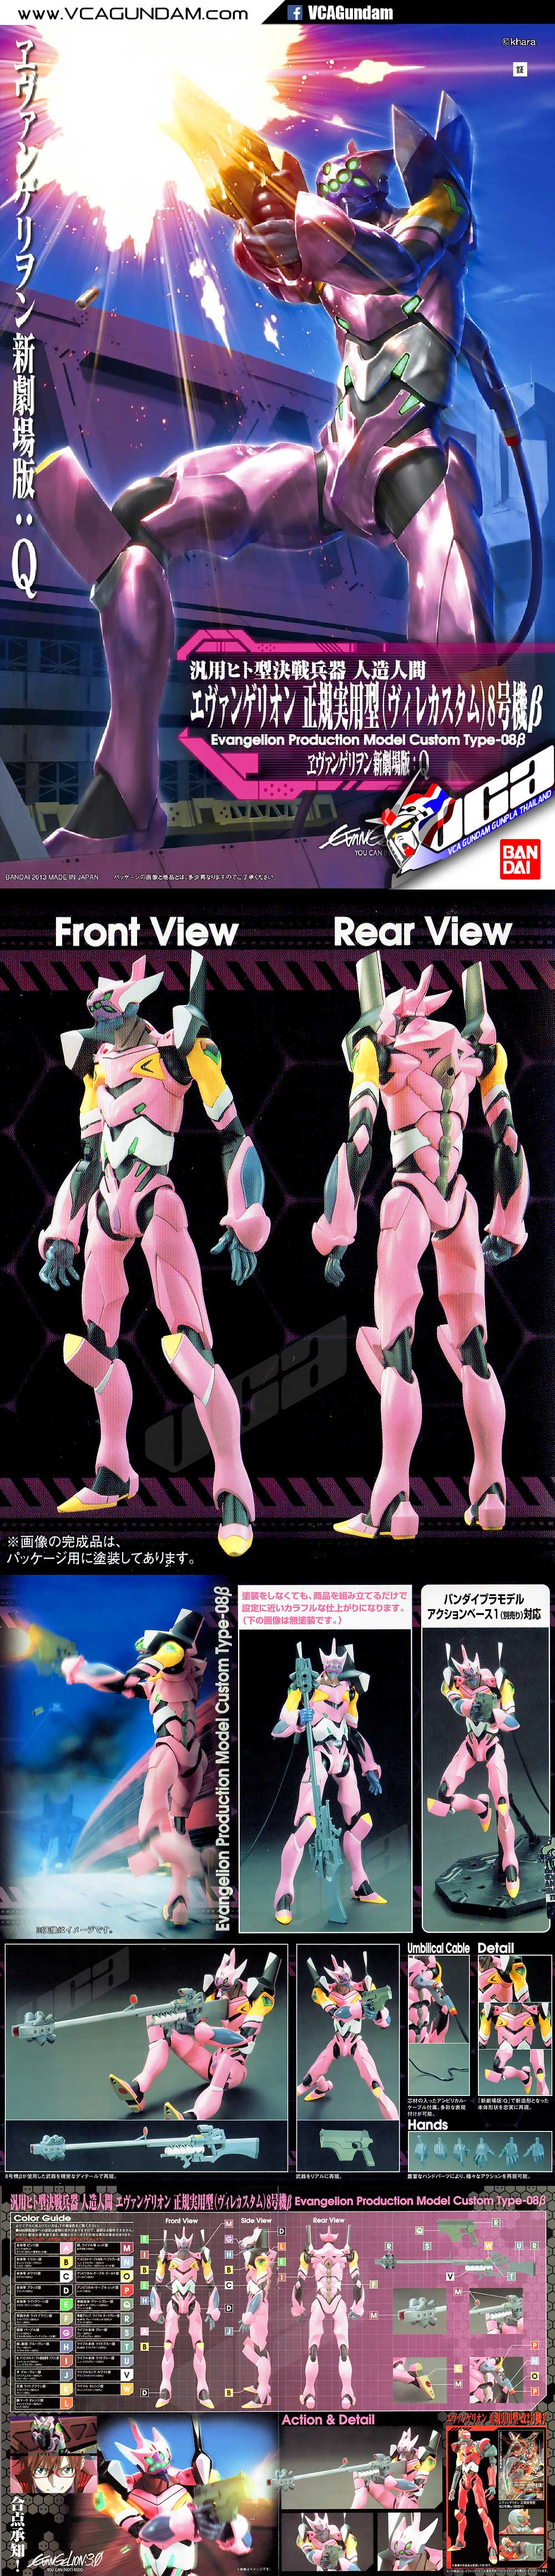 EVANGELION-08 PRACTICAL TYPE (VILLE CUSTOM) อีวานเกเลียน